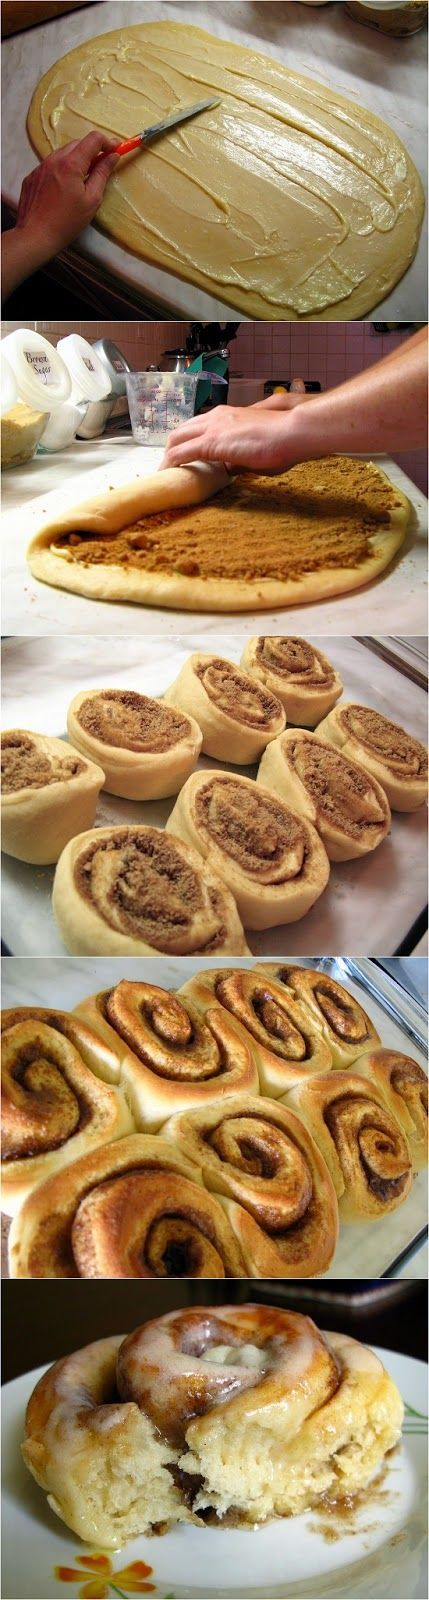 Easy Cinnamon Rolls  Ingredients    1 (1/4 ounce) package active dry yeast  1 cup warm milk  ½ cup granulated sugar  ⅓ cup butter  1 teas...